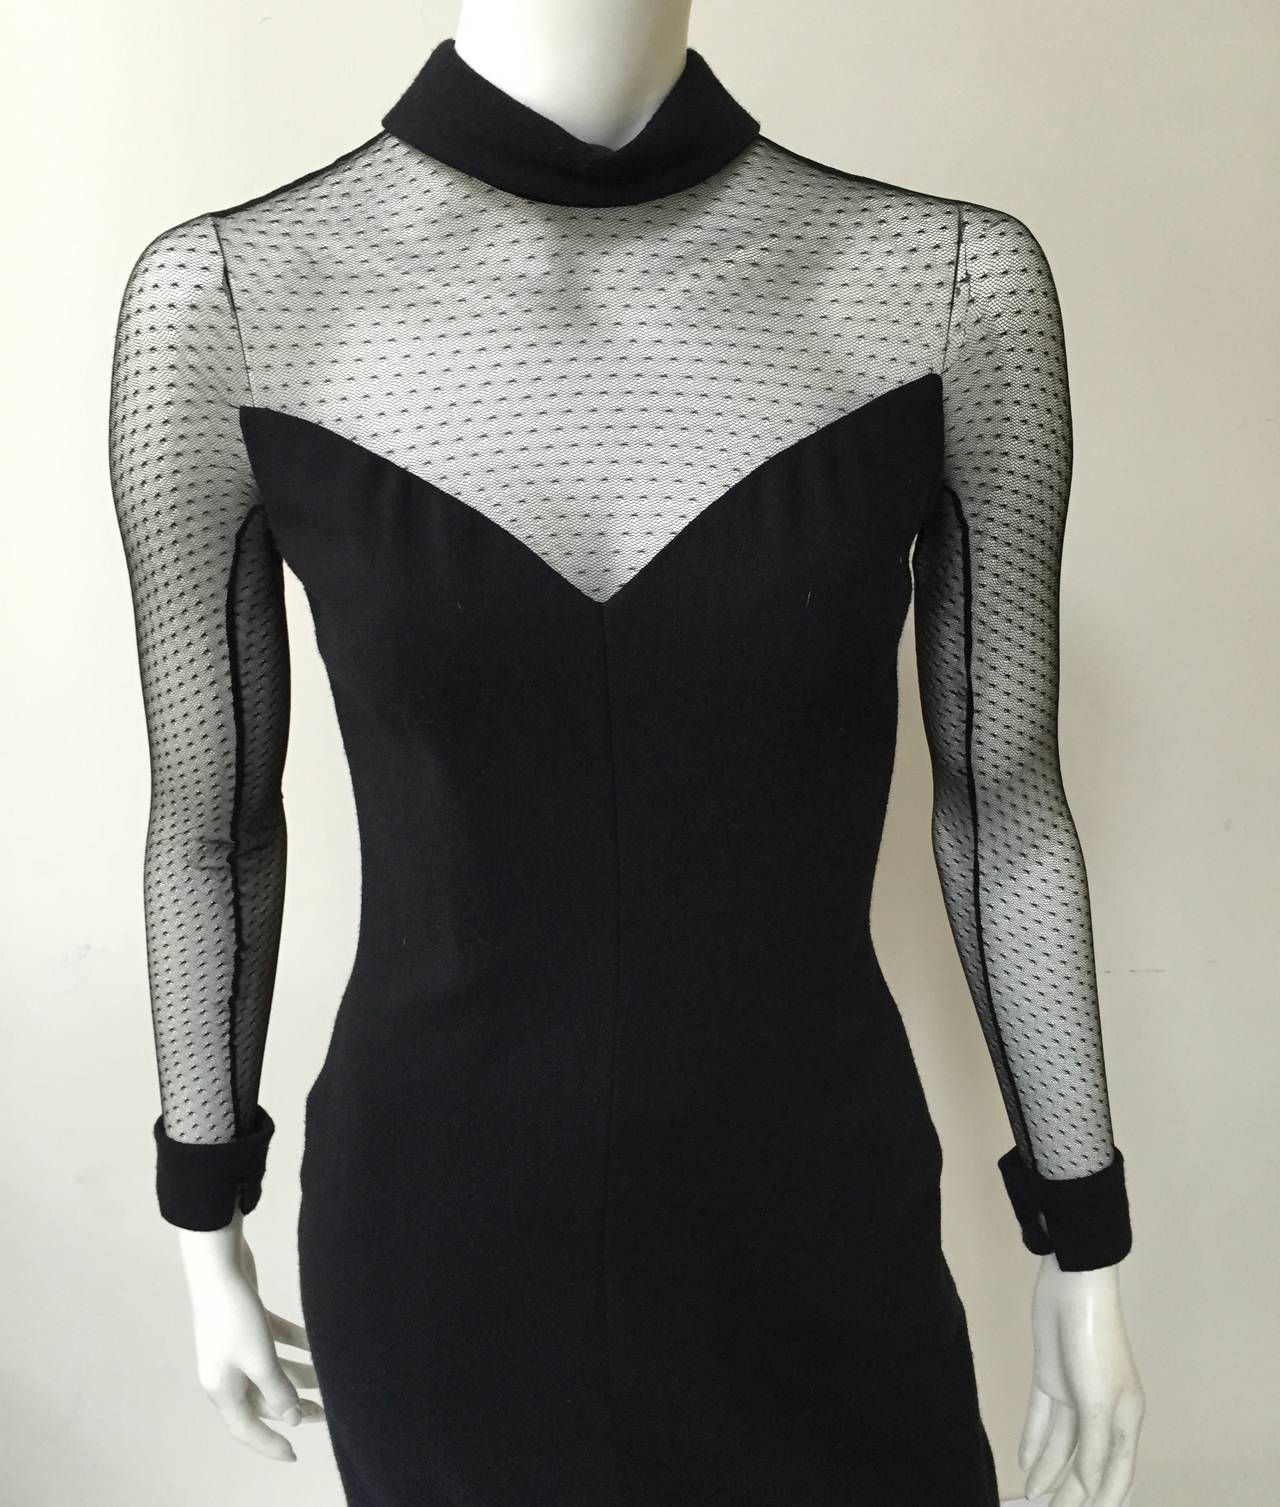 Scaasi Boutique 80s black wool cocktail size 4 dress with netting at neckline, sleeves and back. There are 4 black bows that hook and attach back of dress. This dress came from Isaacson's which was a very elegant store in Atlanta catering to high